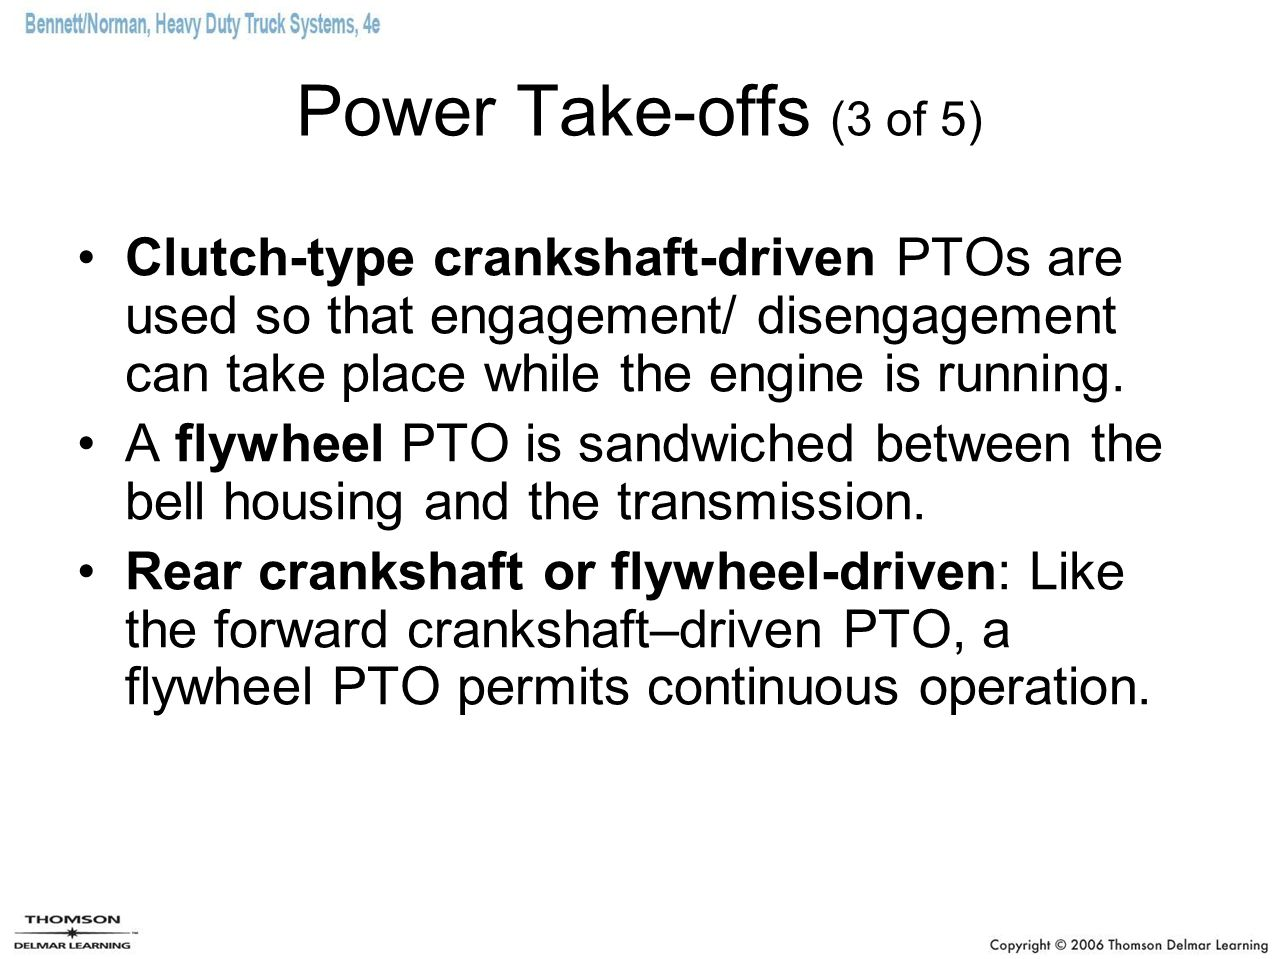 Power Take-offs (3 of 5) Clutch-type crankshaft-driven PTOs are used so that engagement/ disengagement can take place while the engine is running. A f